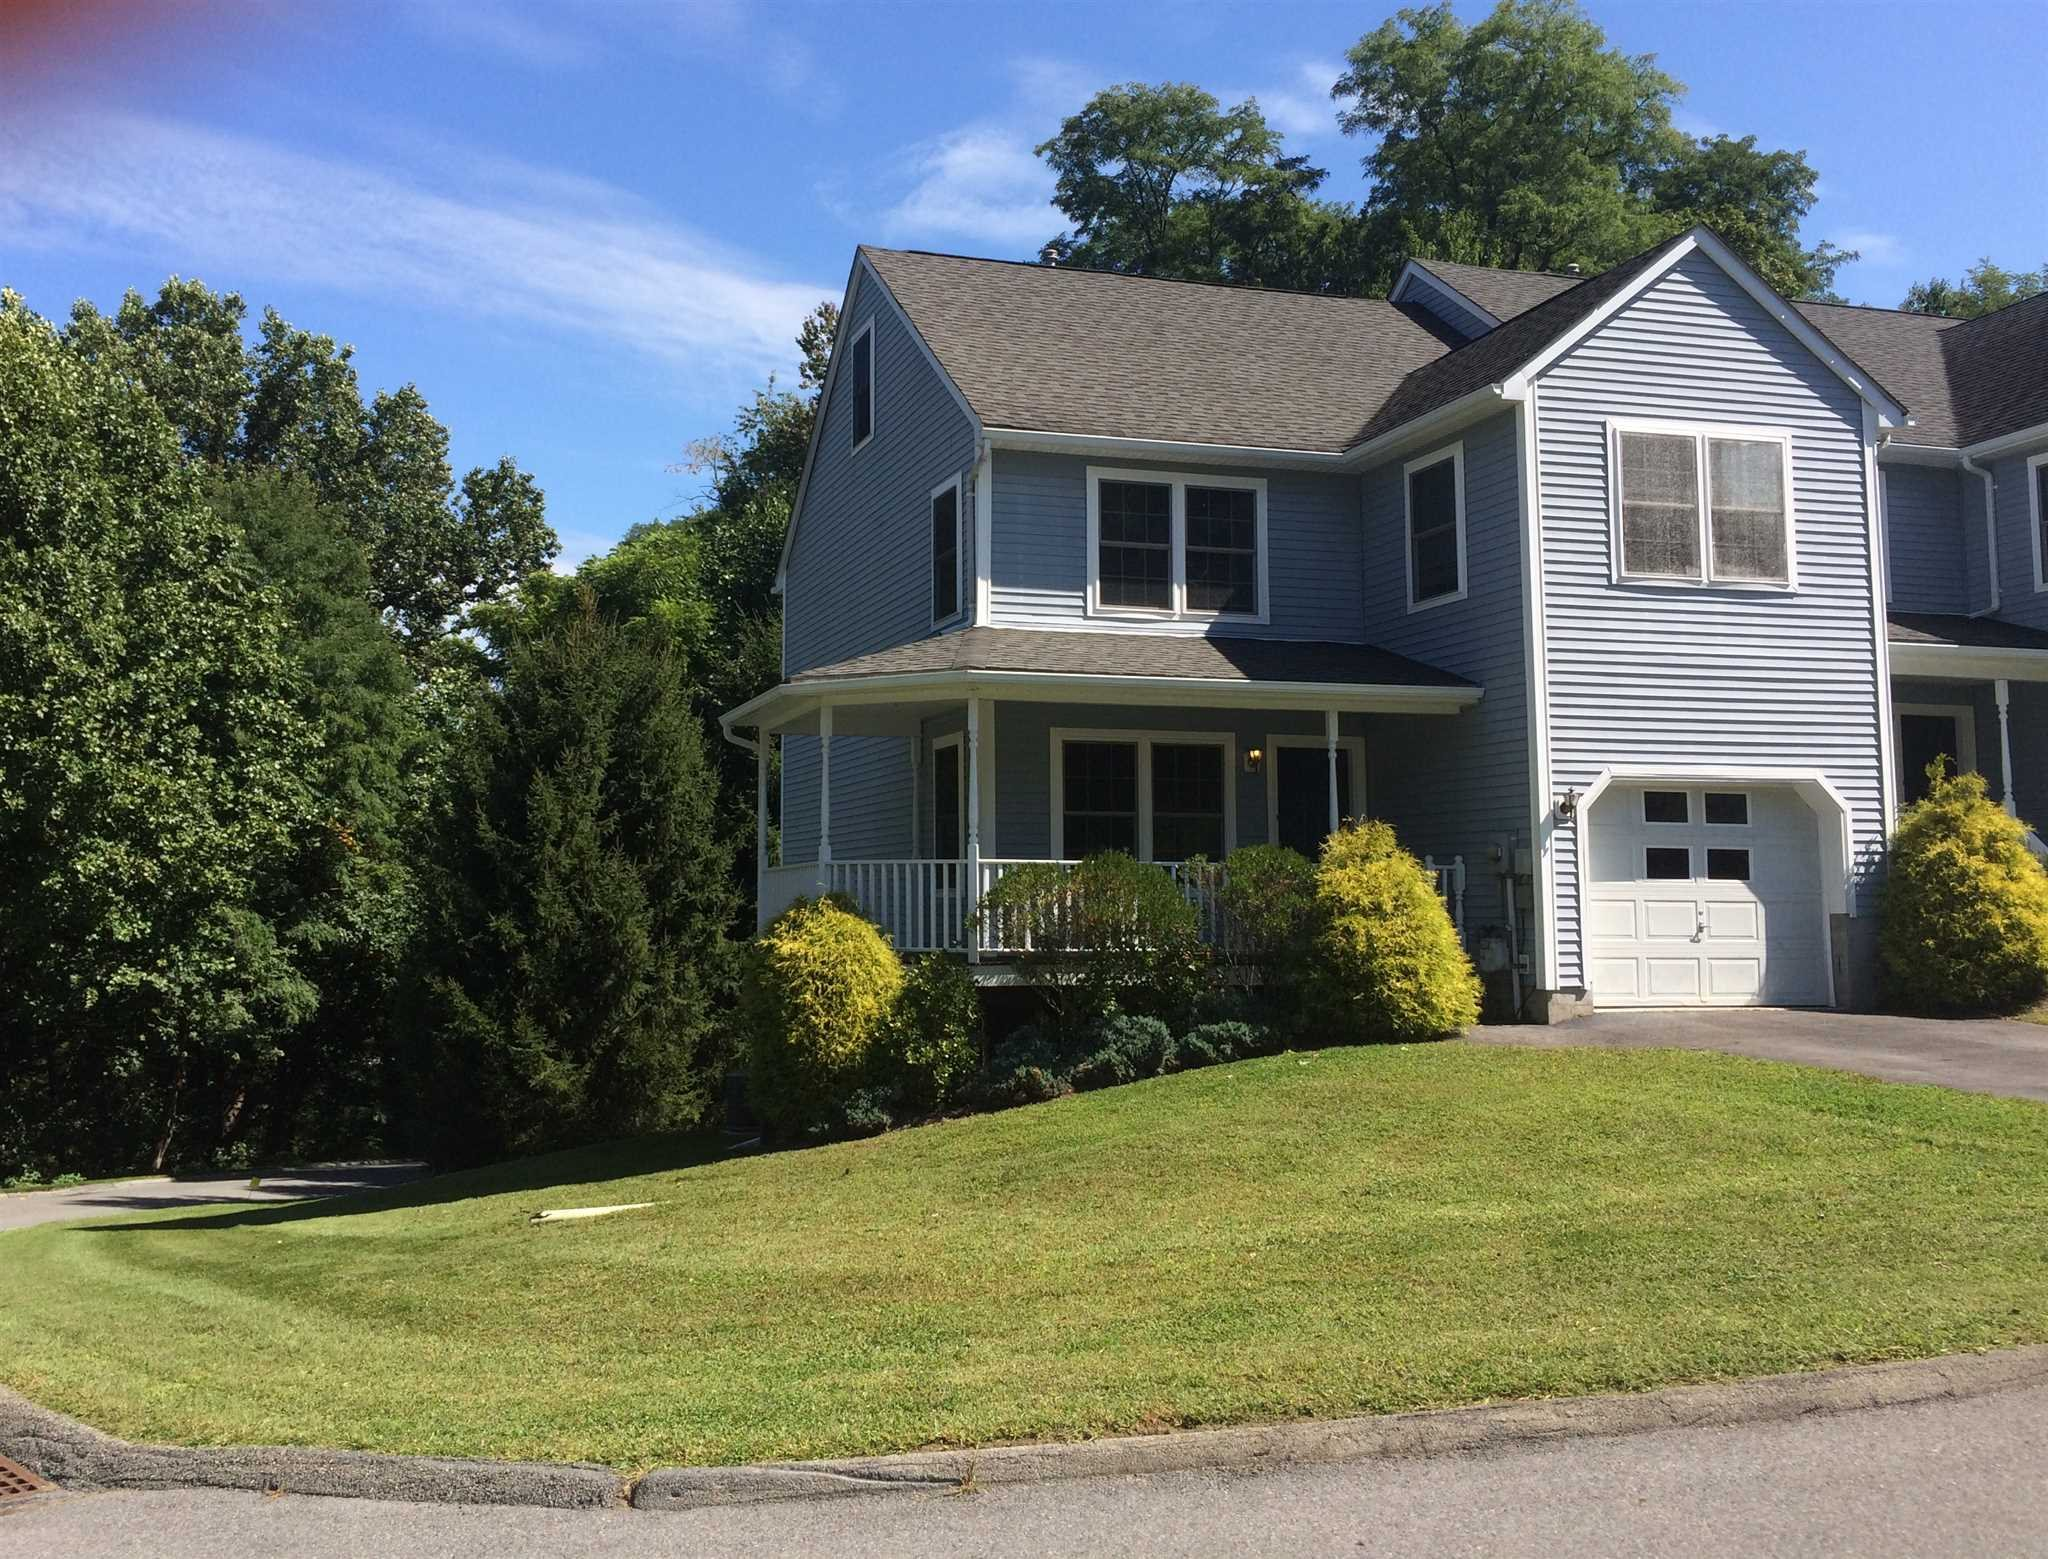 Single Family Home for Sale at 20 WINDSOR Court 20 WINDSOR Court Poughkeepsie, New York 12601 United States